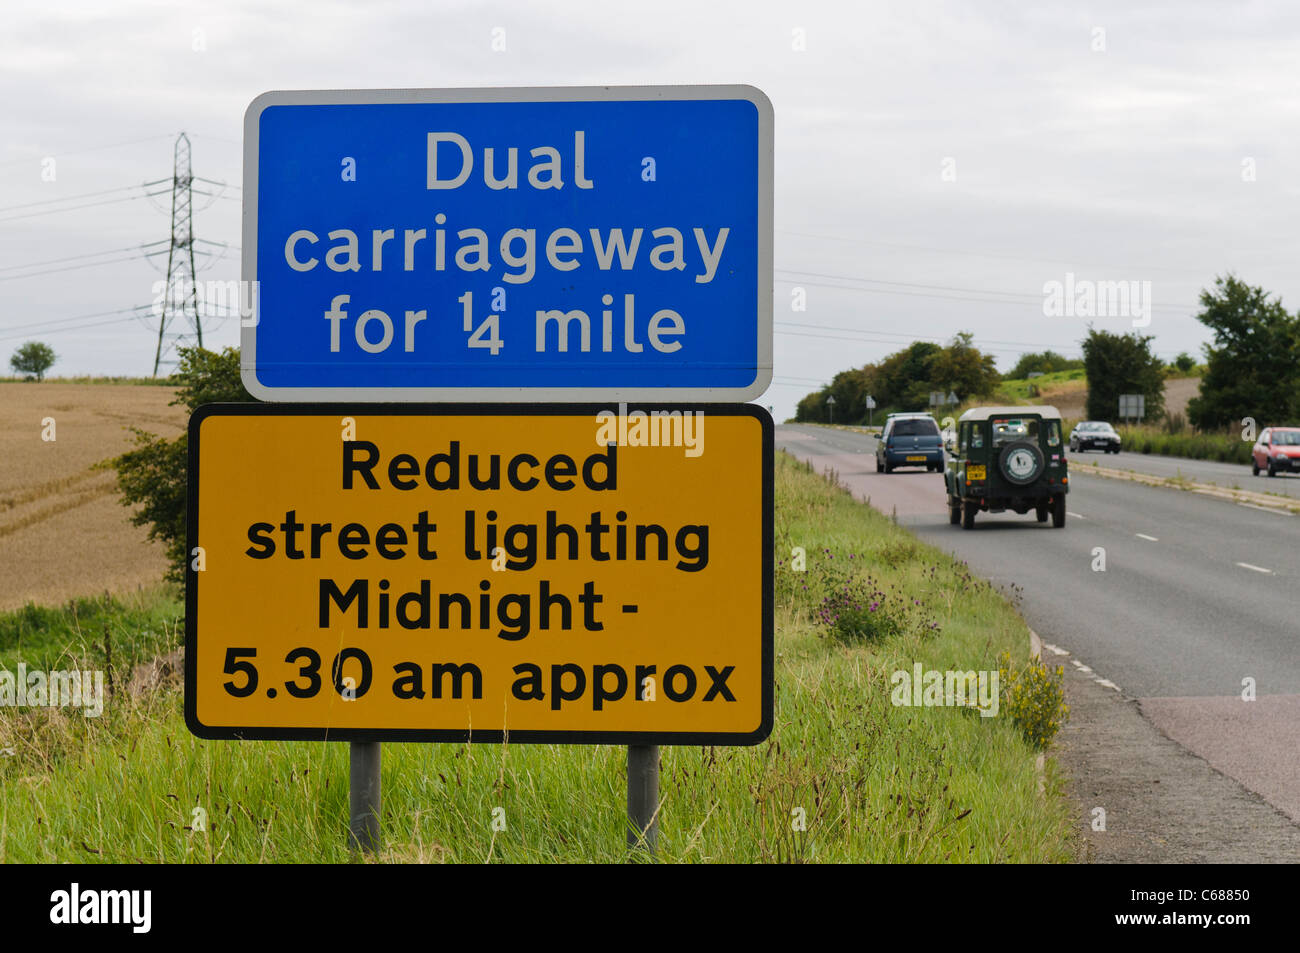 Sign at Dual Carriageway warning of reduced lighting - Stock Image